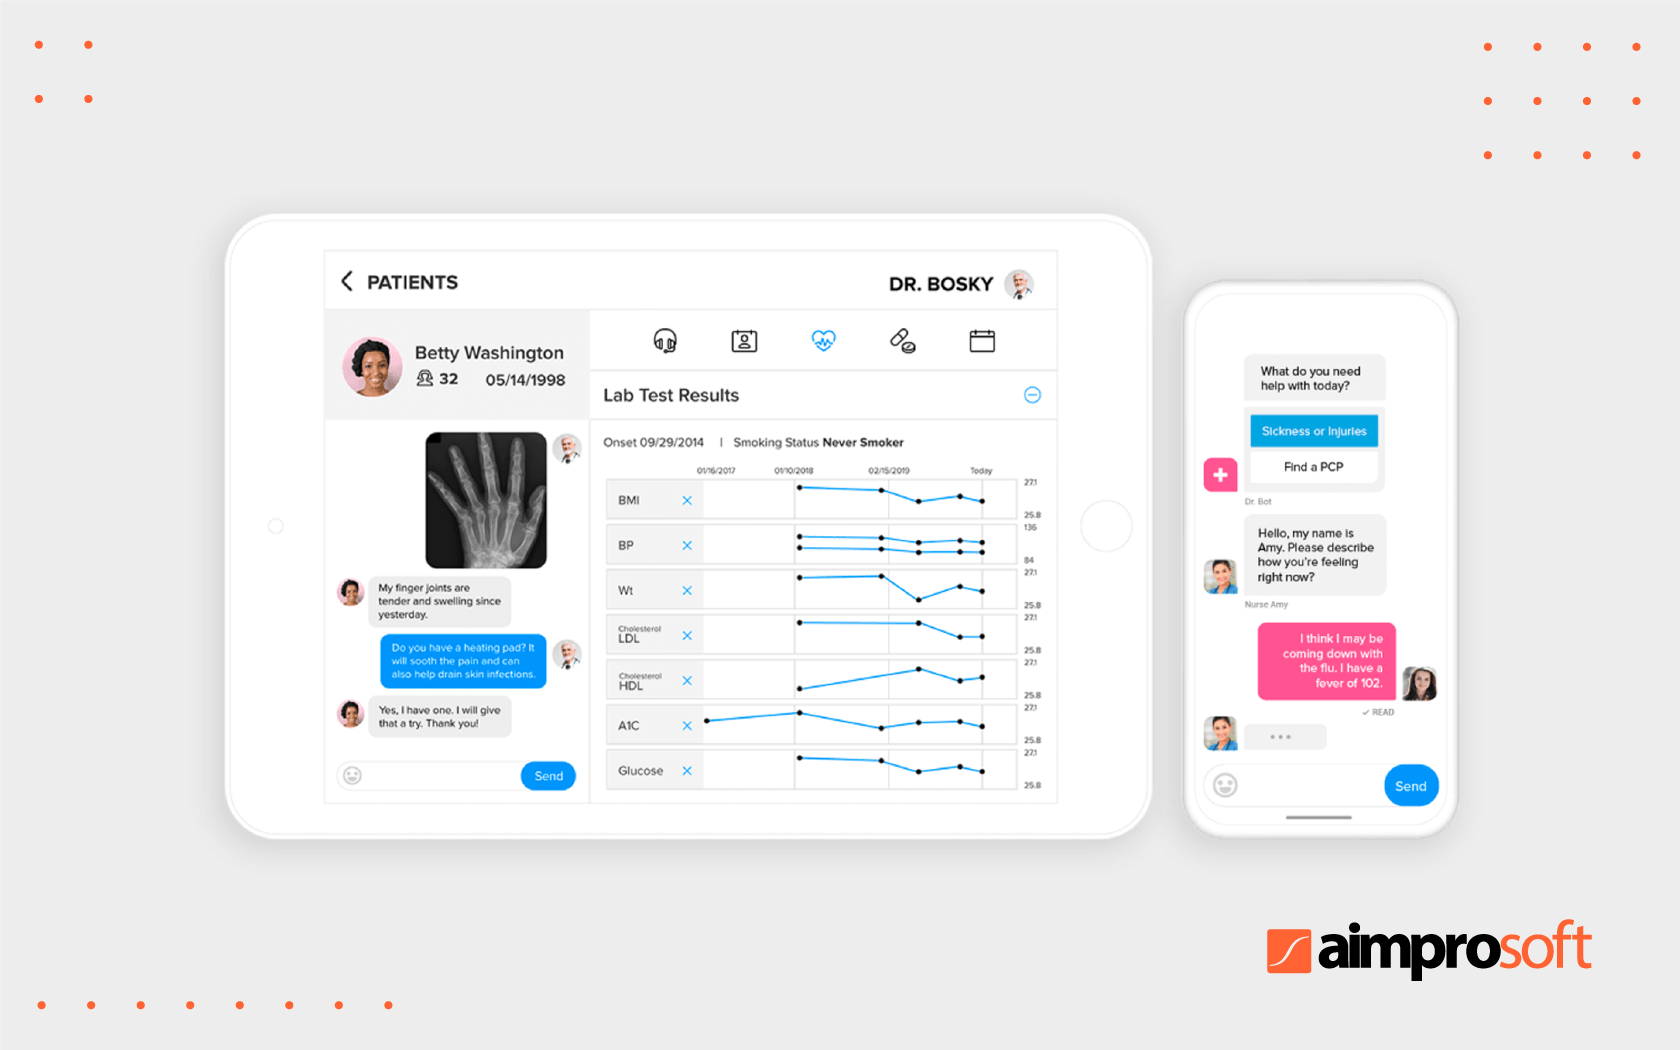 PubNub is a real-time in-app chat and communication platform for messaging and video conferencing